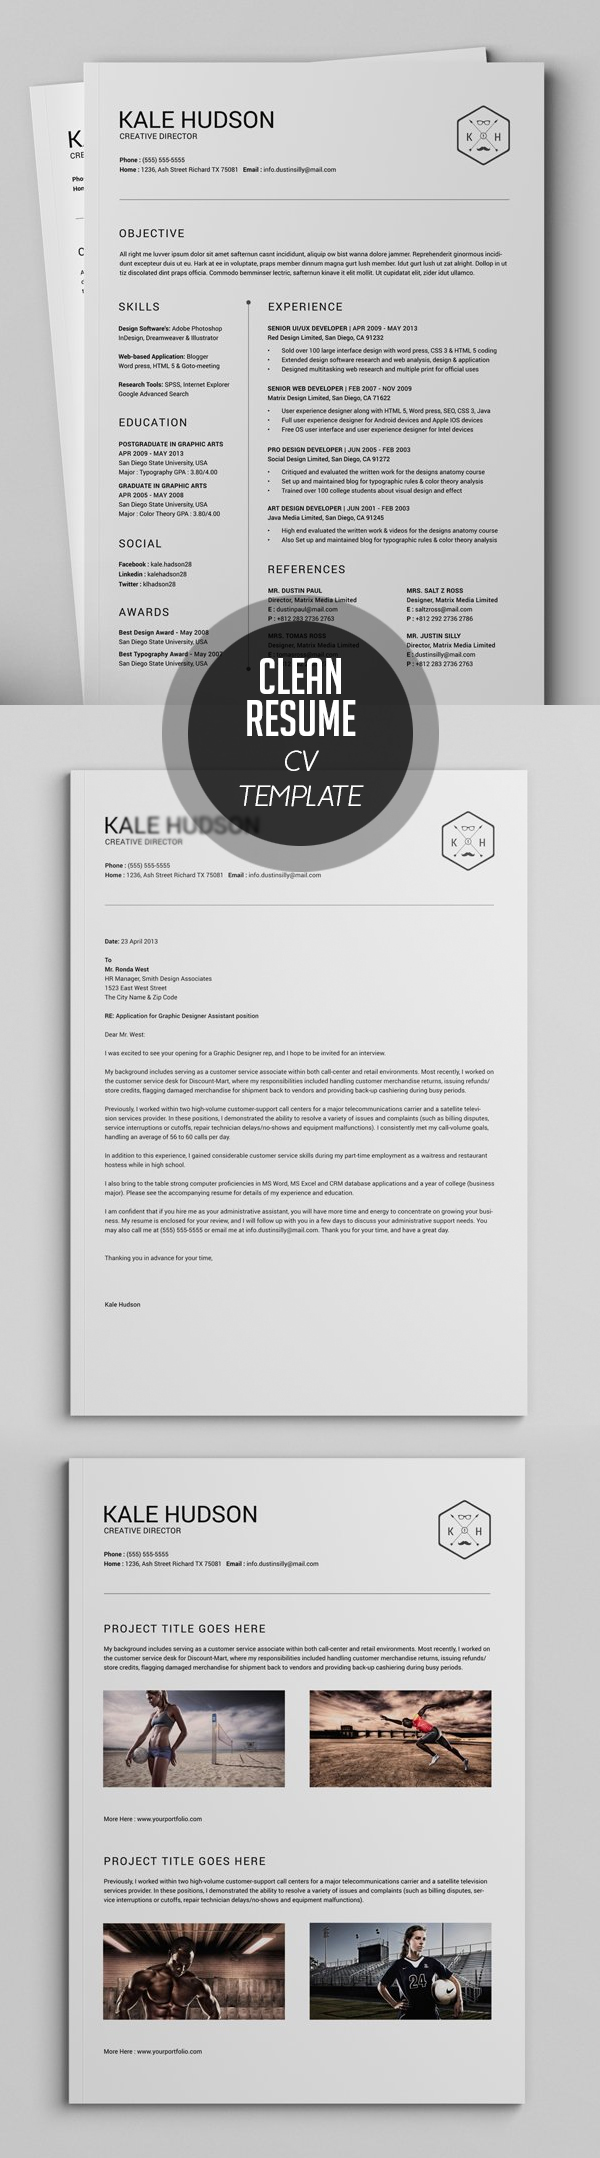 Clean Resume CV Template #resumedesign